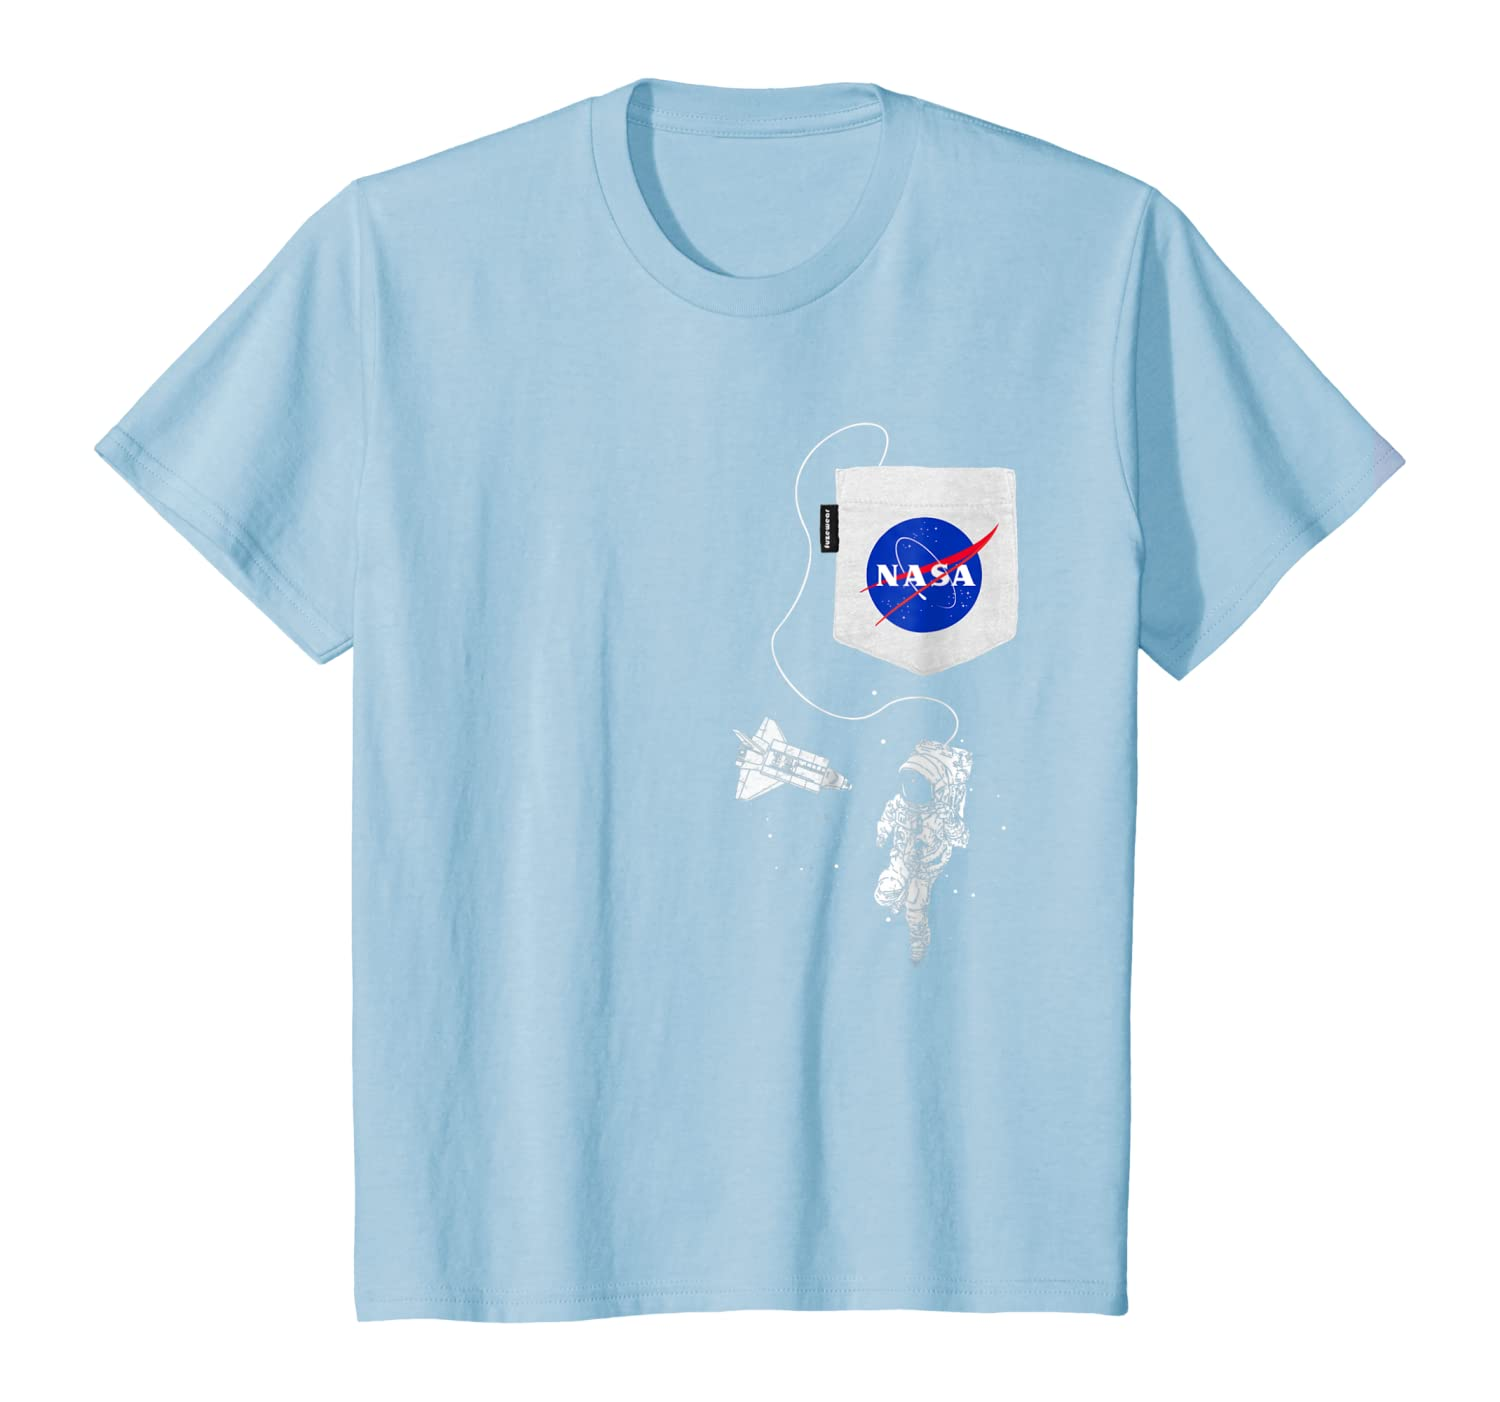 NASA Pocket Astronaut Space Shuttle in Space T-Shirt Youth